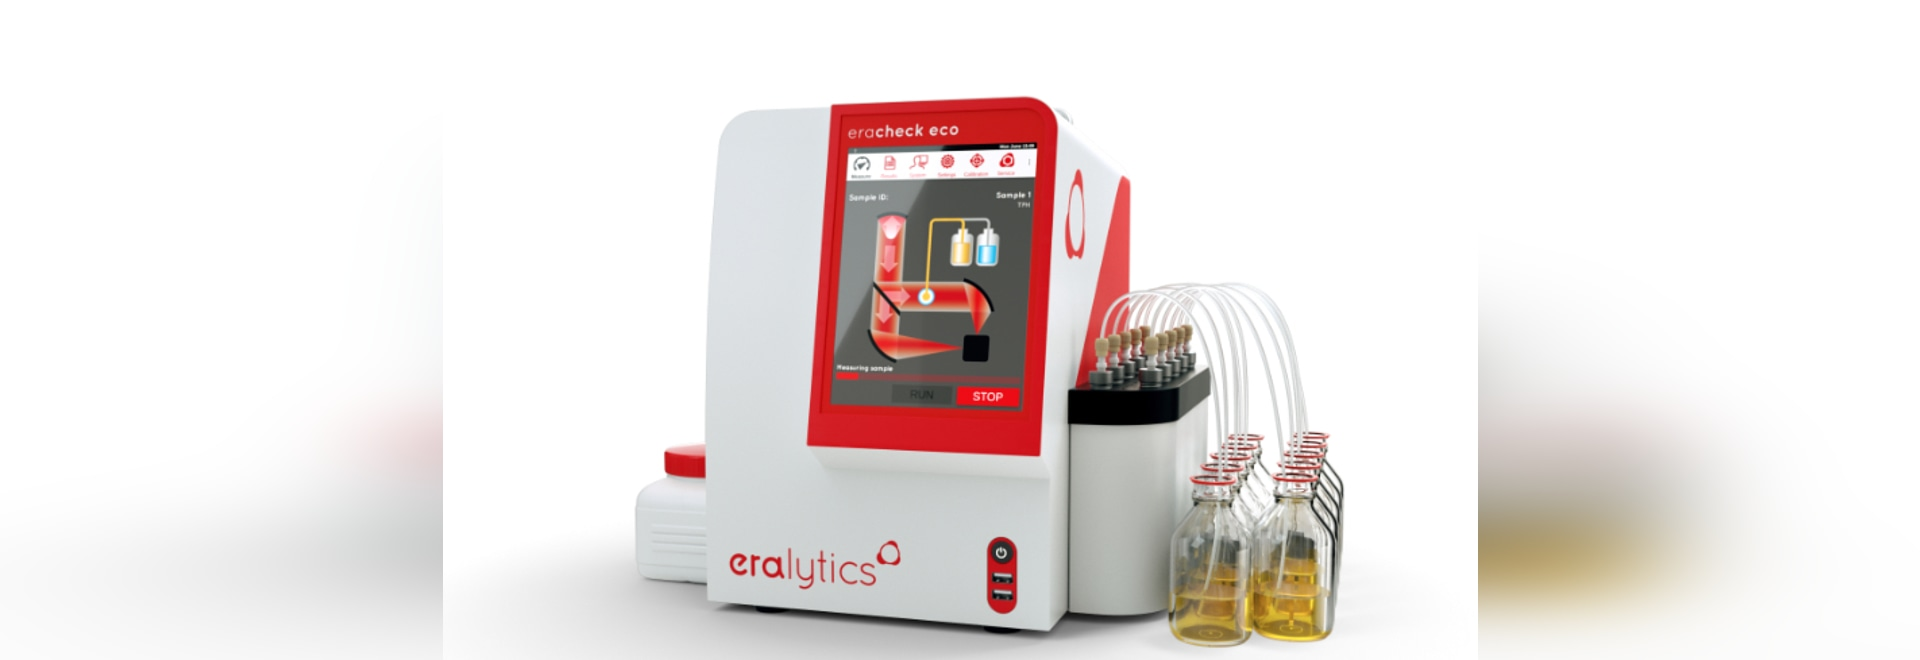 ERACHECK ECO CFC-free oil-in-water testing